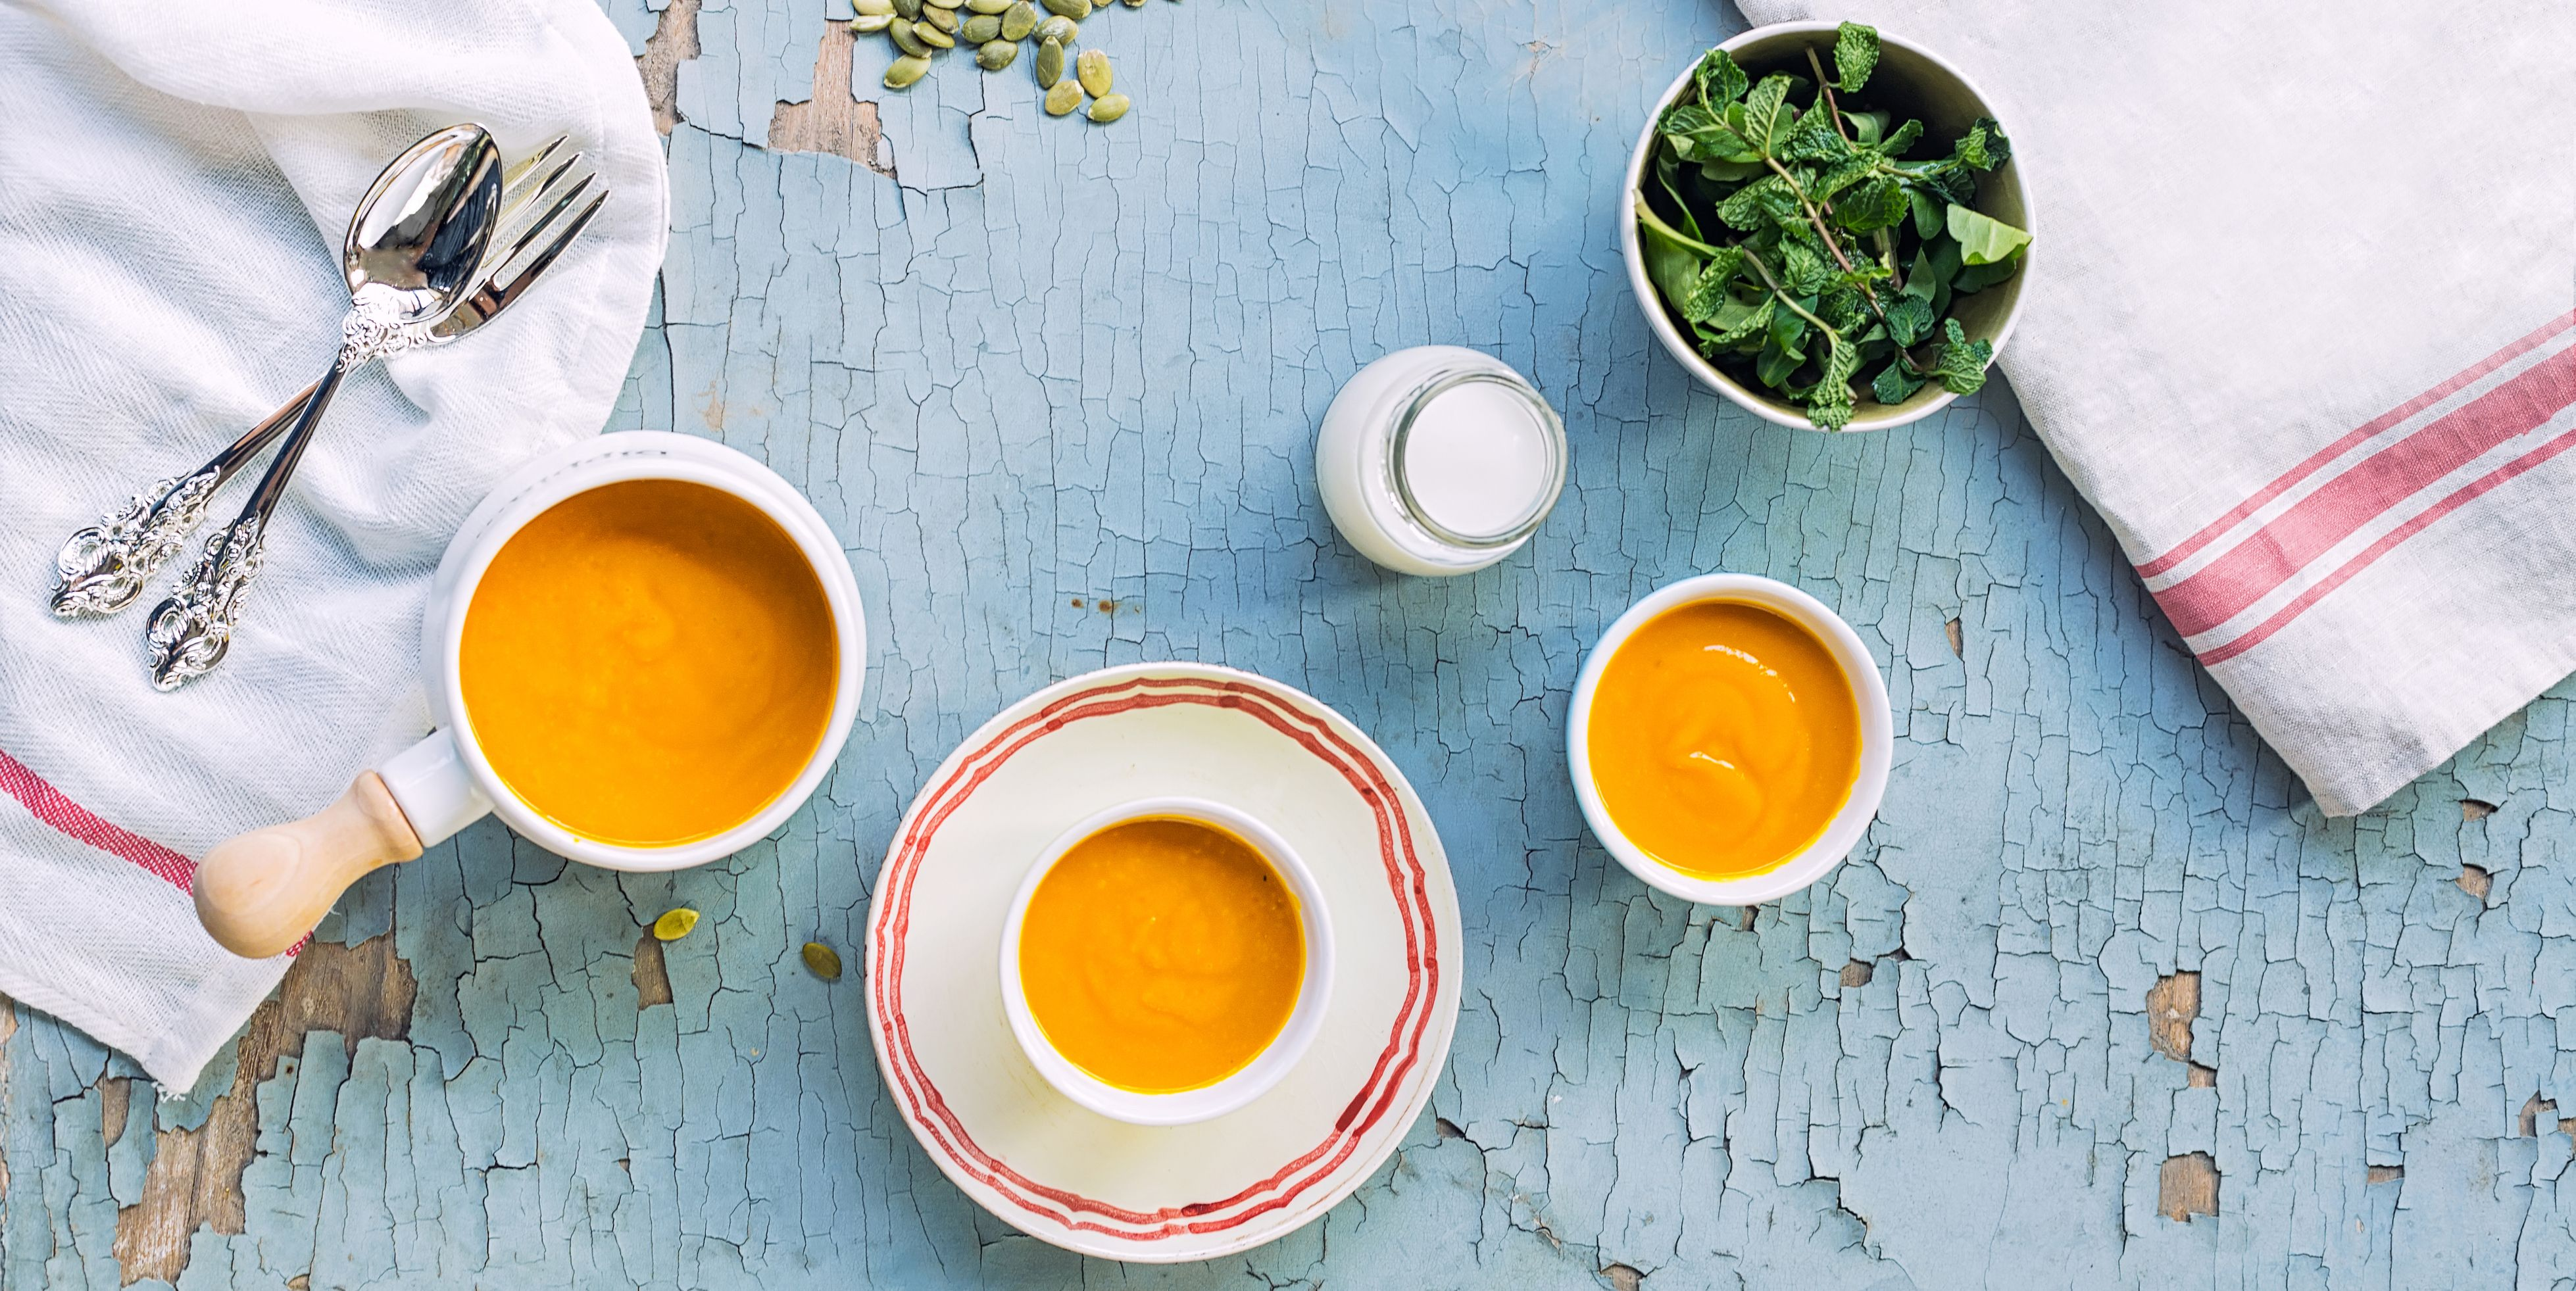 40 Easy Pumpkin Soup Recipes How To Make The Best Savory Pumpkin Soups